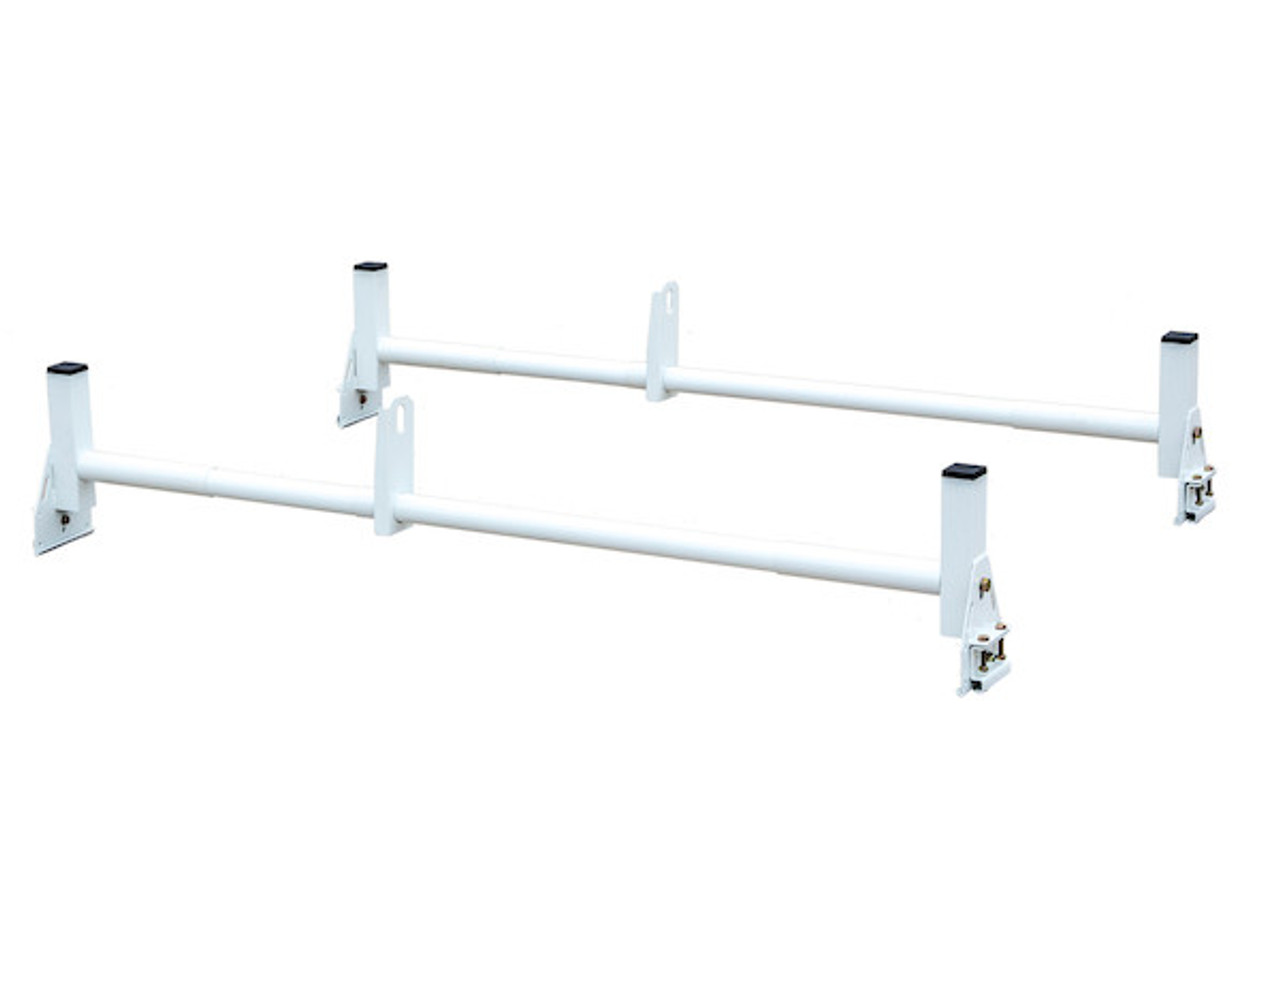 BUYERS 1501310 White Van Ladder Rack Set - 2 Bars And 2 Clamps Picture # 1